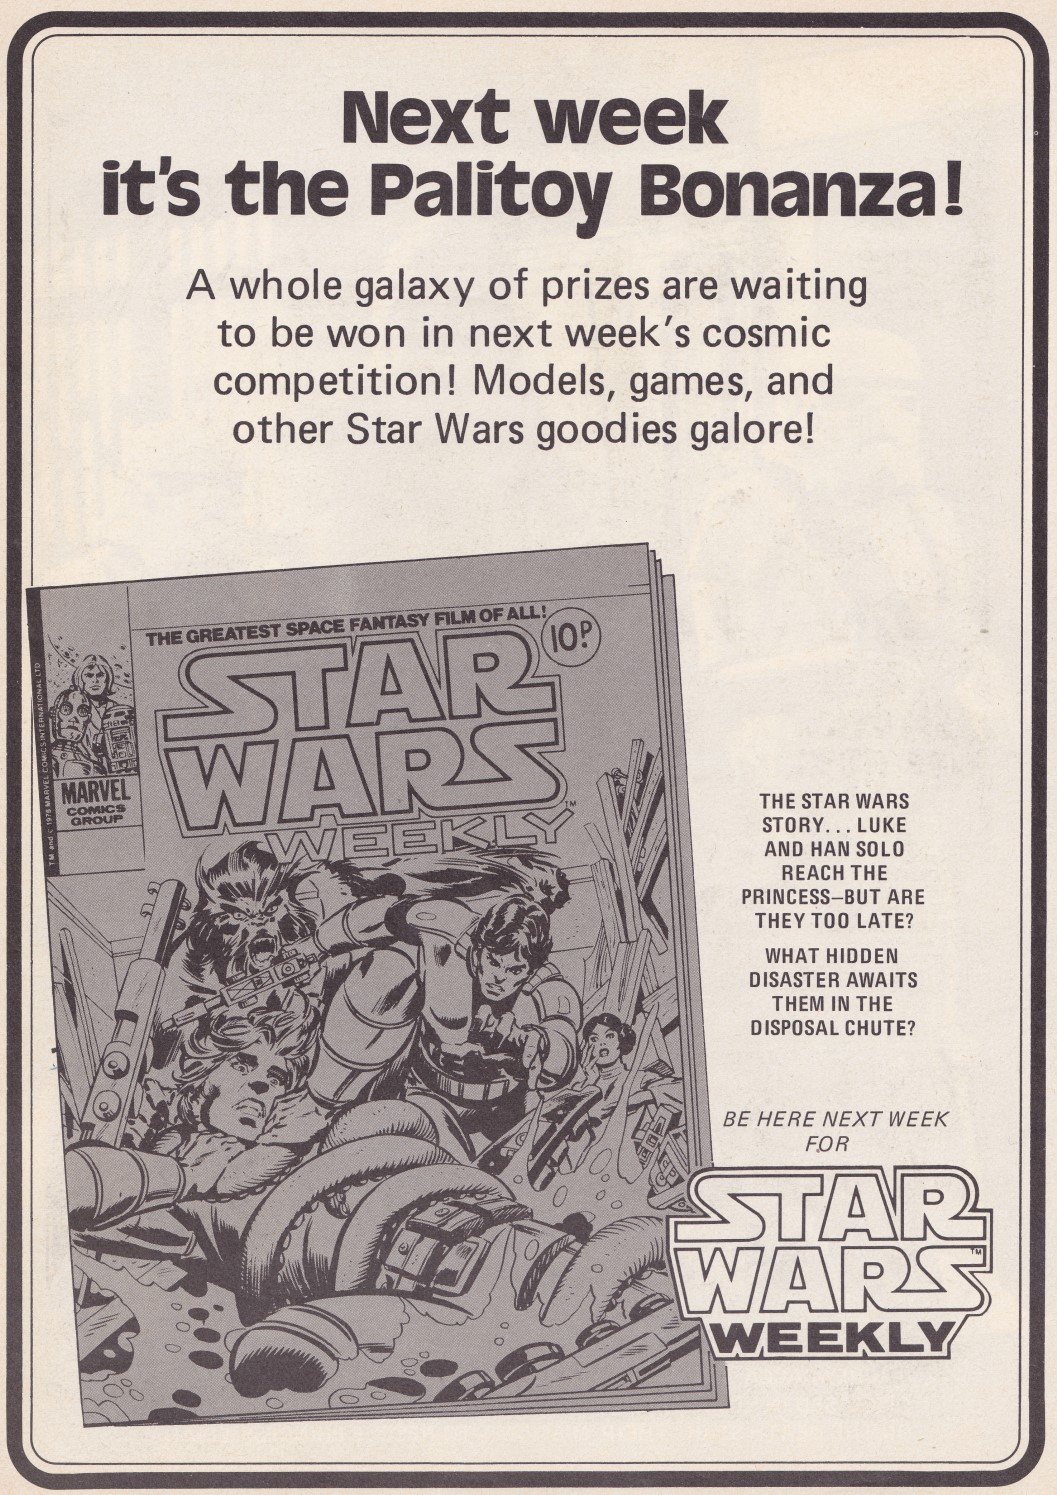 Star Wars Weekly Issue 6 - Palitoy Bonanza